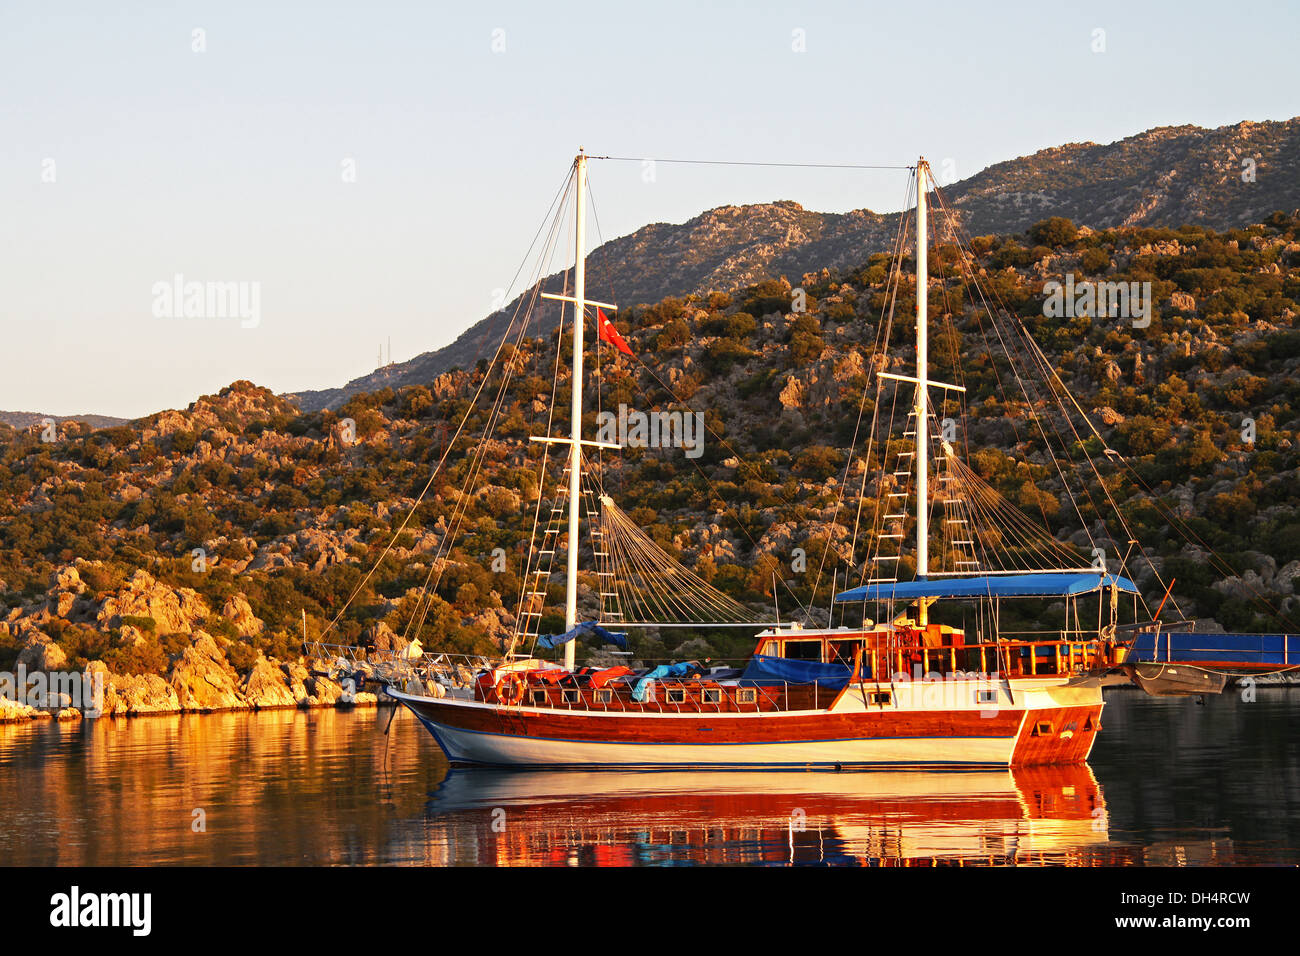 Colourfull boat in the Turkish sunset. - Stock Image